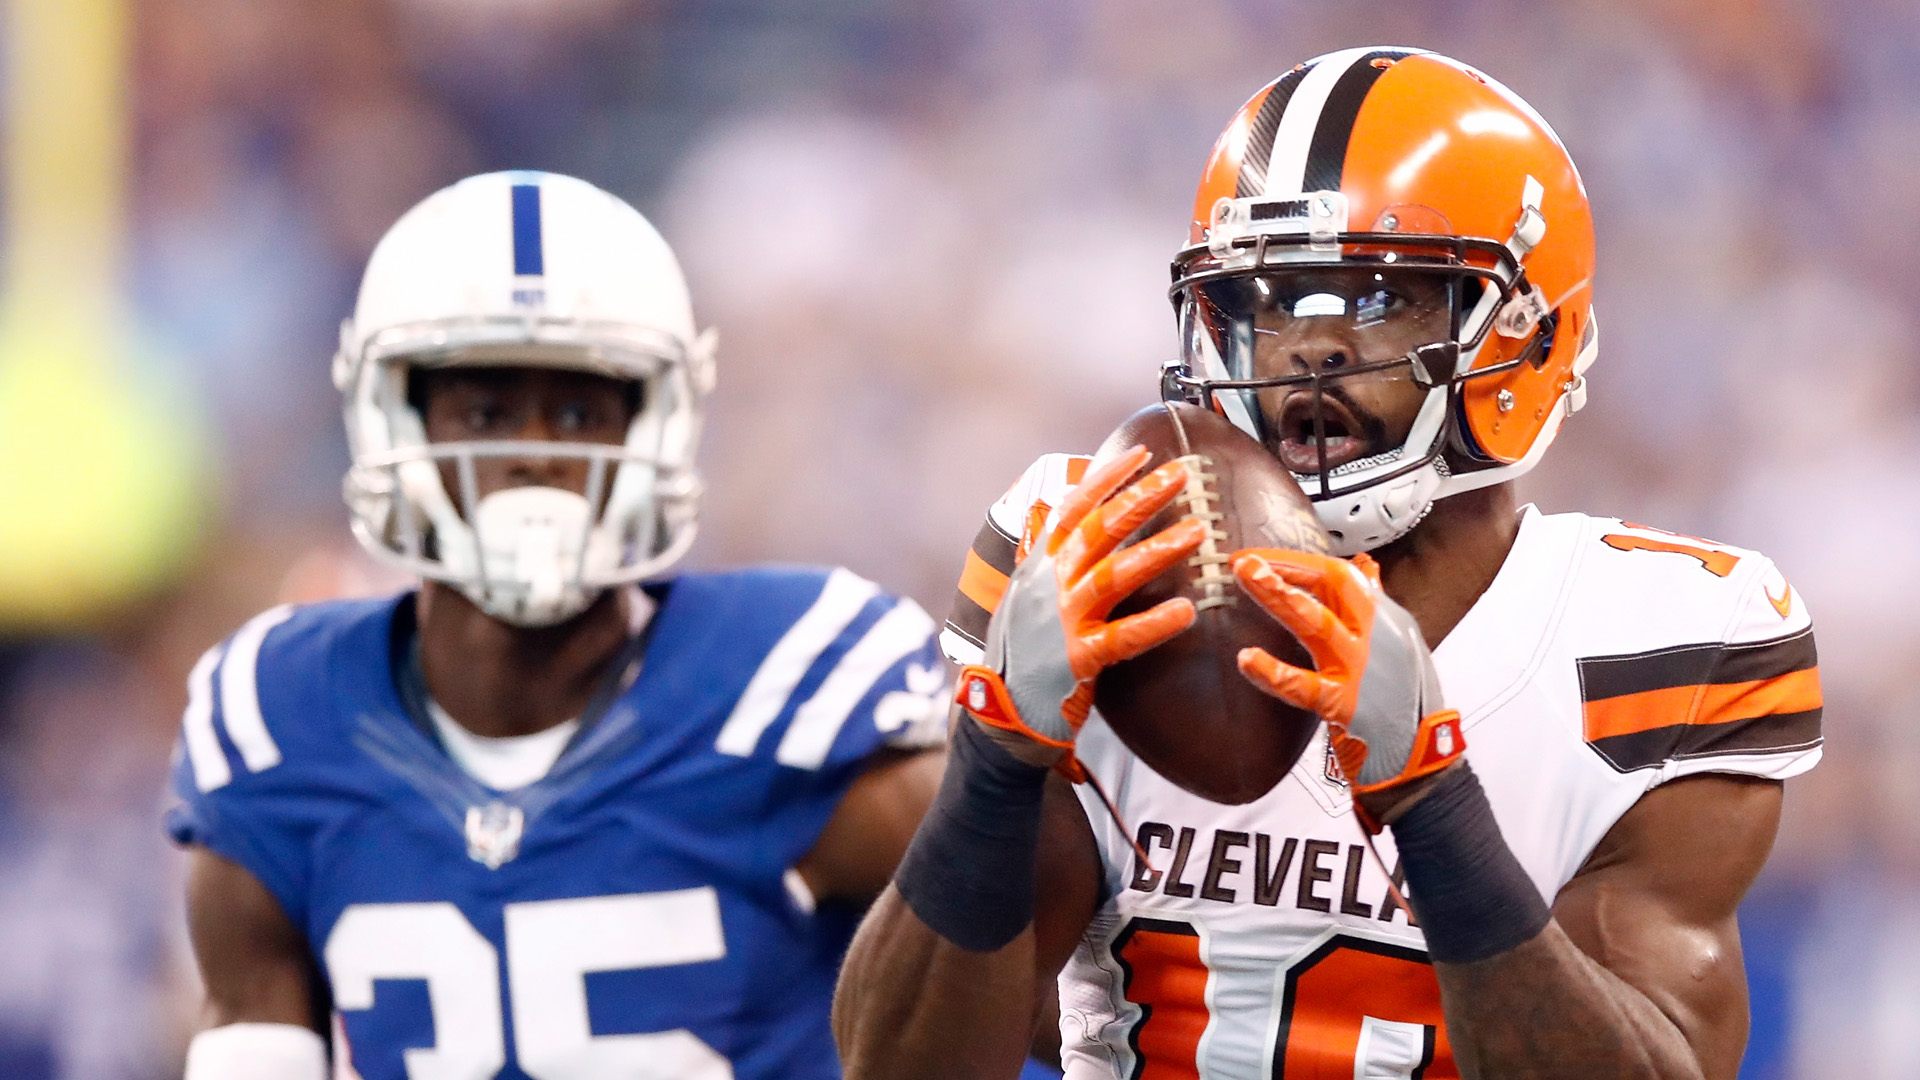 Kenny Britt, Corey Coleman sent home from Browns trip to Houston